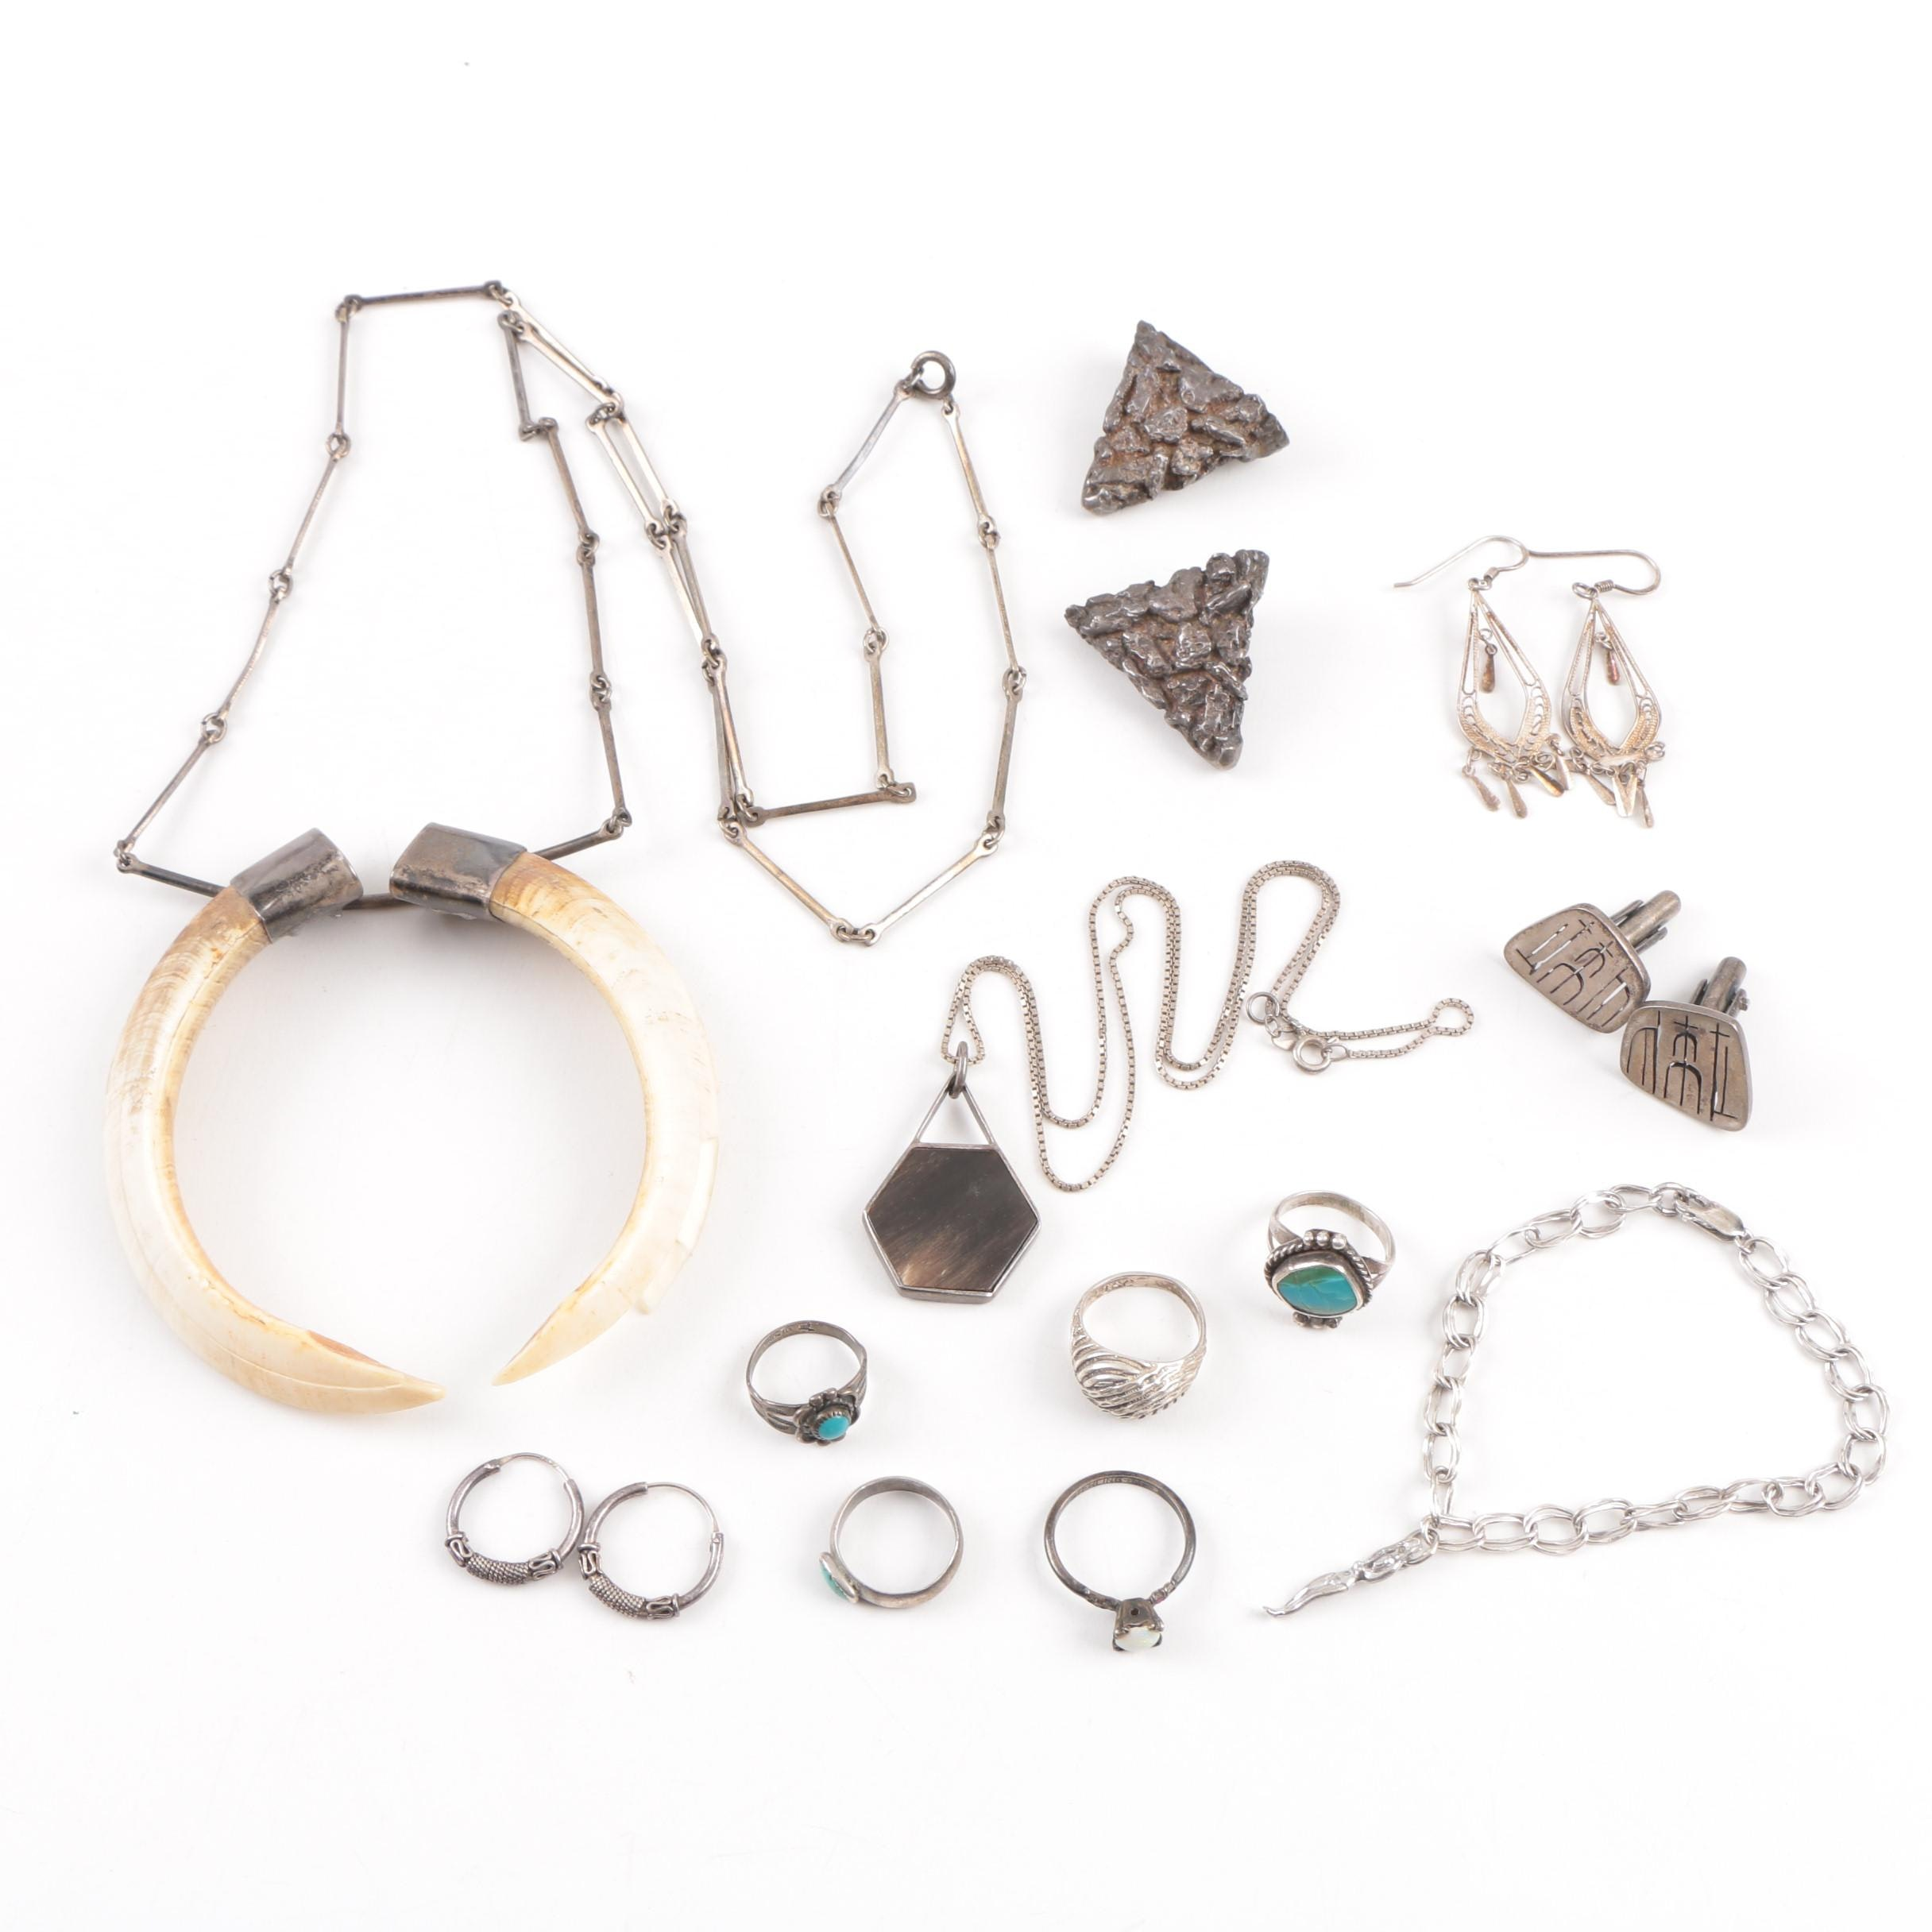 Sterling Silver Jewelry Featuring Bell Trading Post, Gemstones, Antler, and Boar Tusk